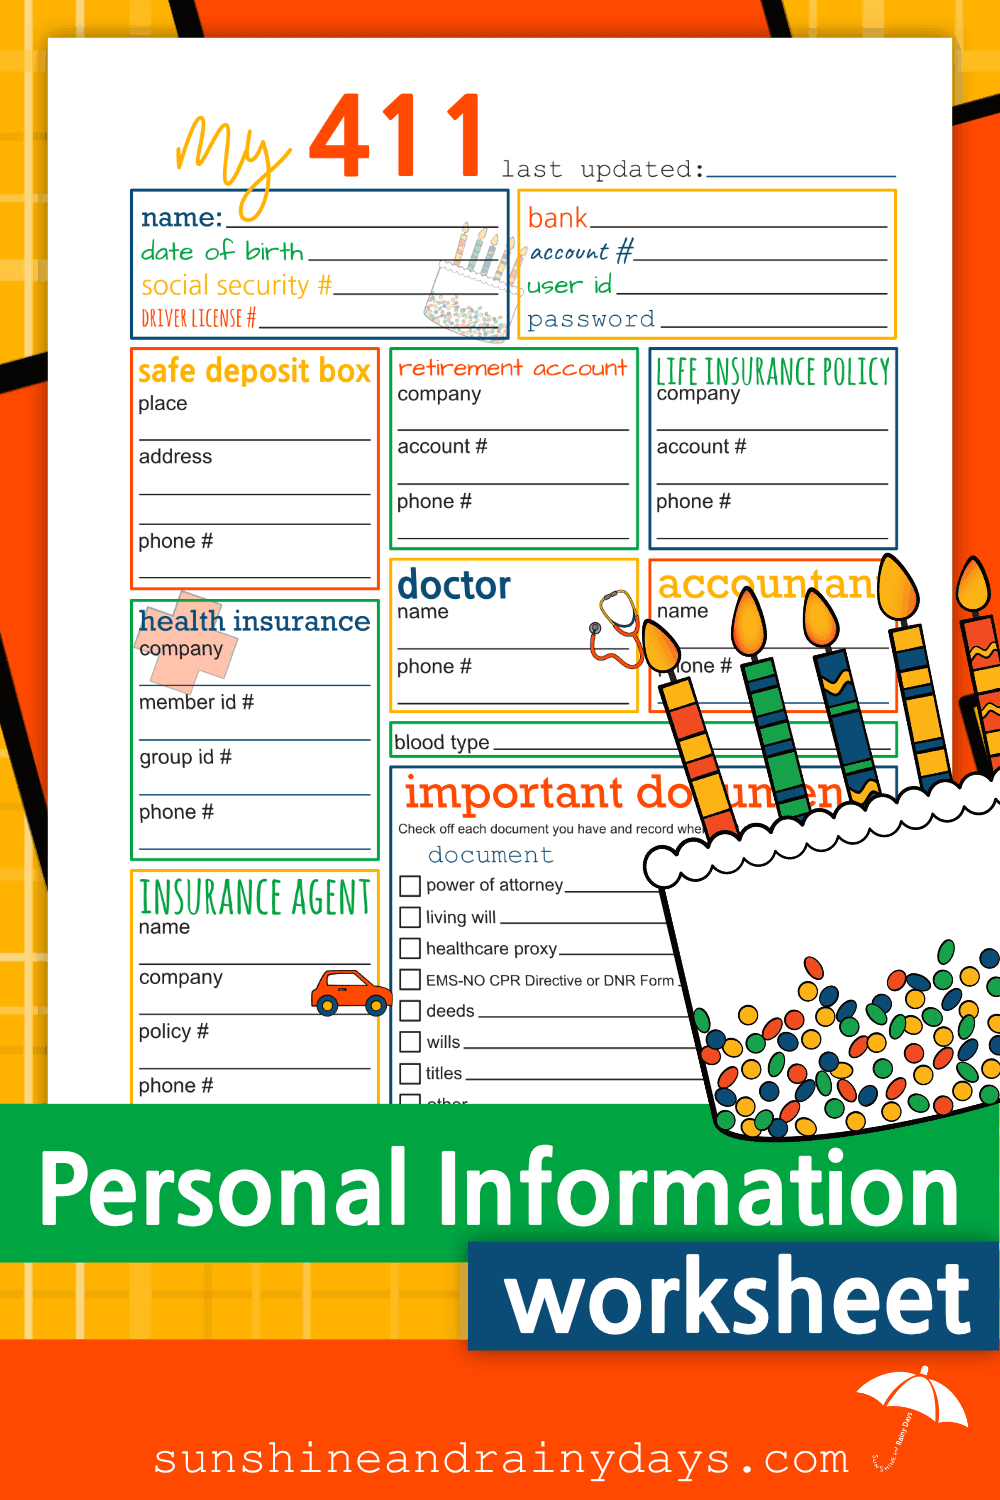 Personal Information Worksheet In Case Of Emergency Health Insurance Life Insurance Policy Medical Health Insurance